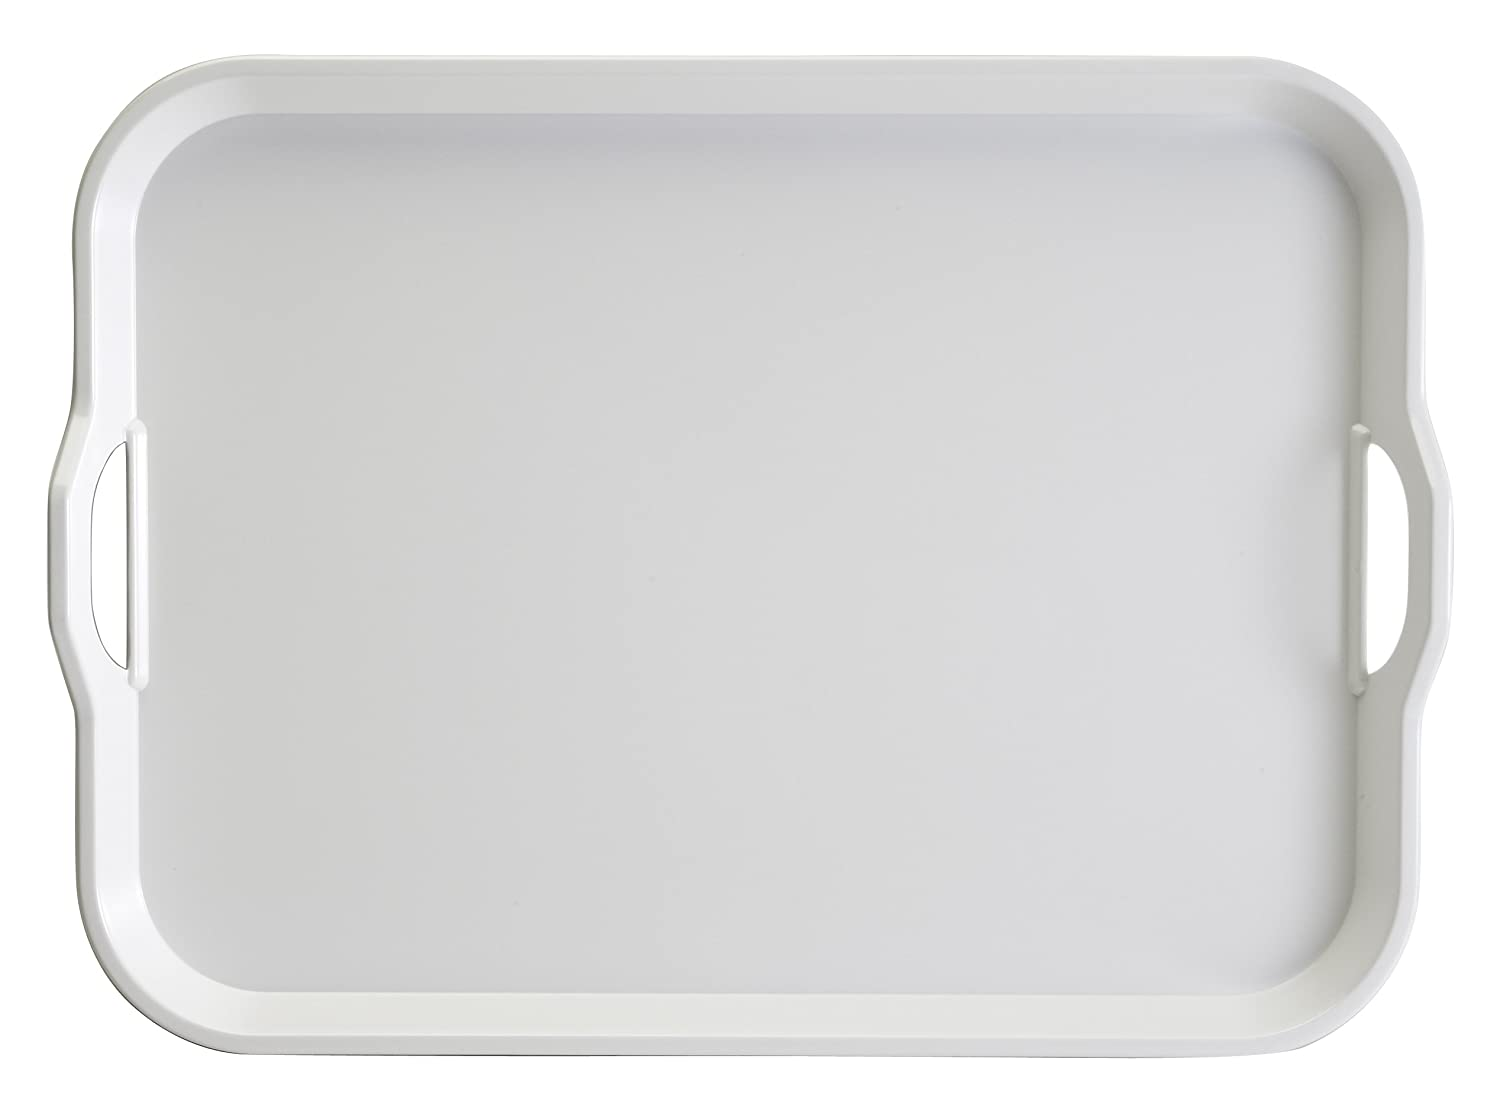 Hutzler Melamine Serving Tray, White, 20-Inch